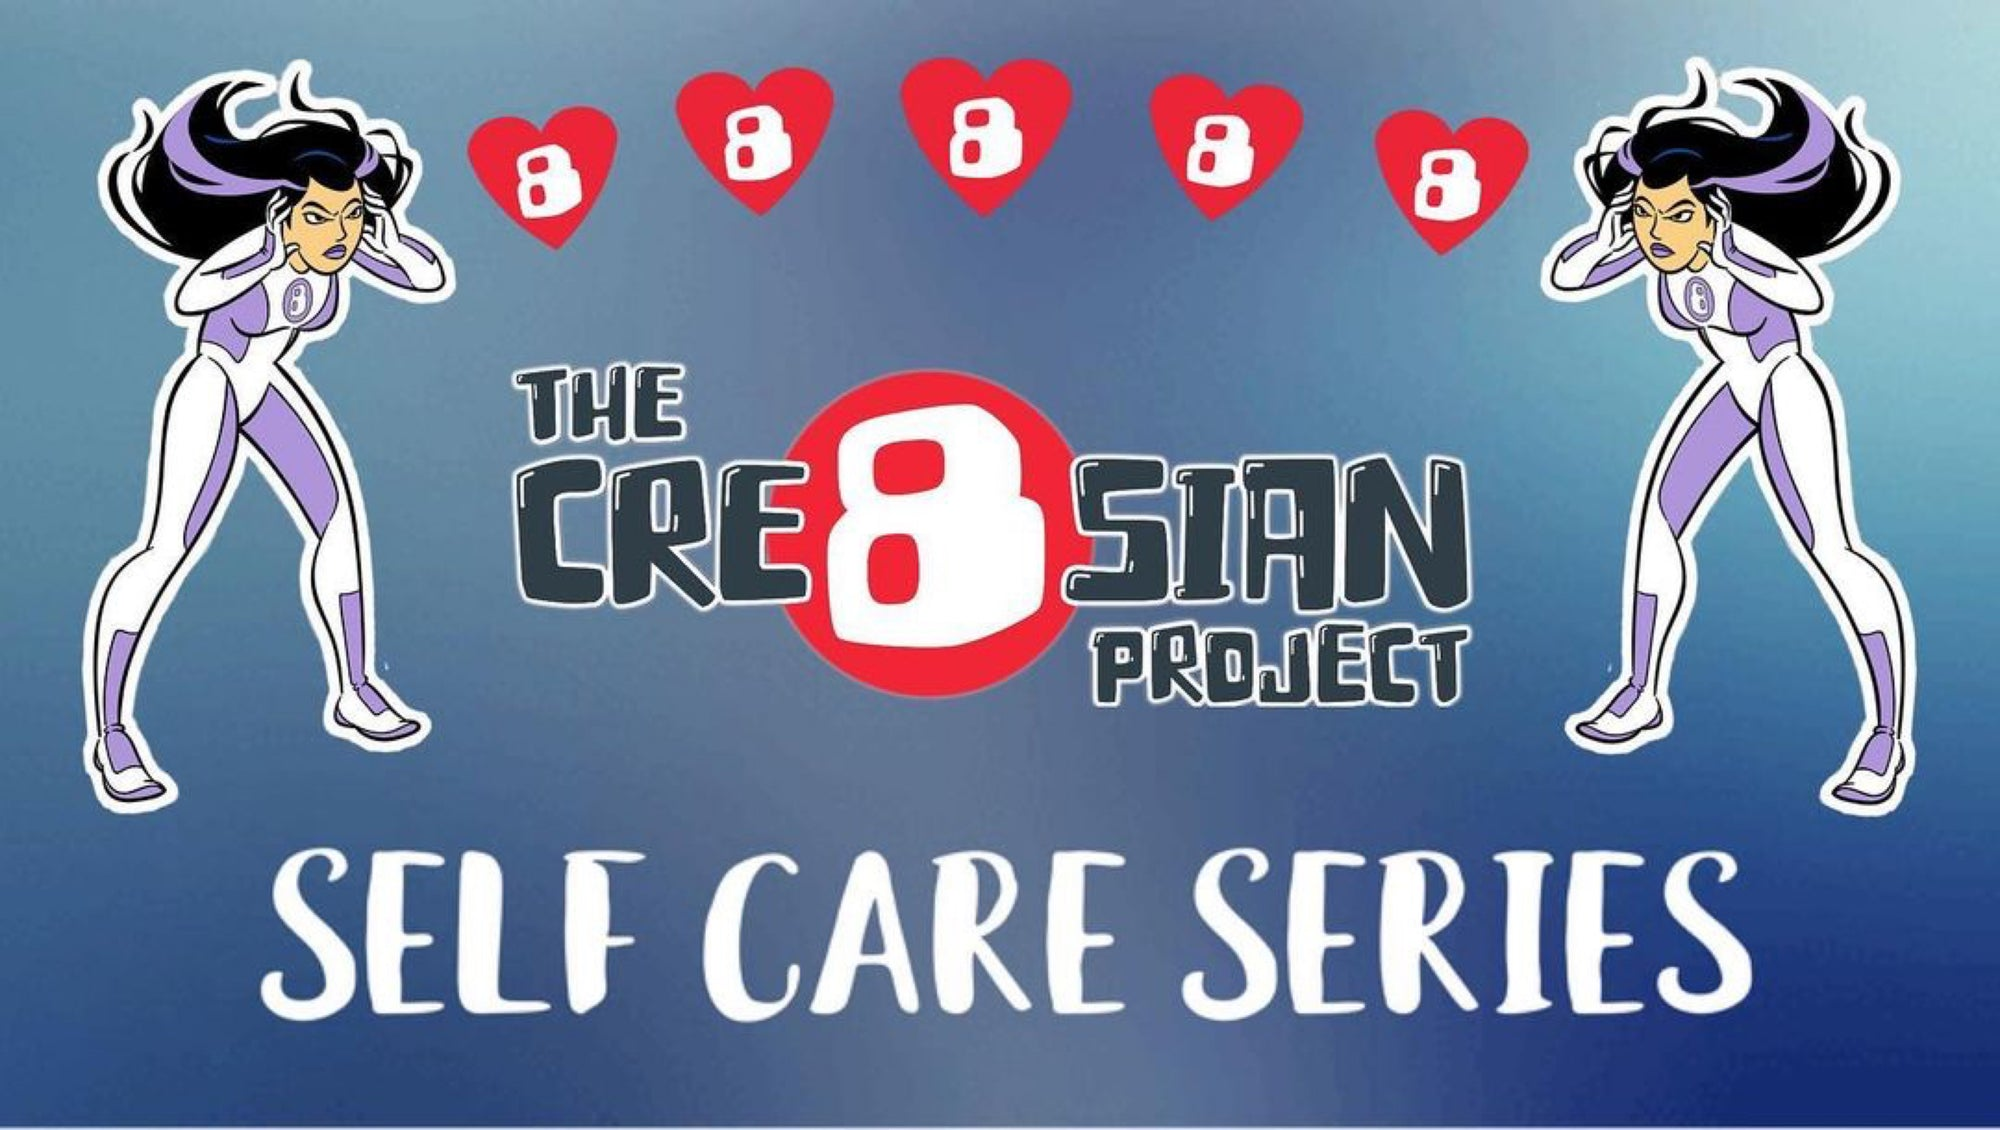 Self Care Series: Patranya Bhoolsuwan